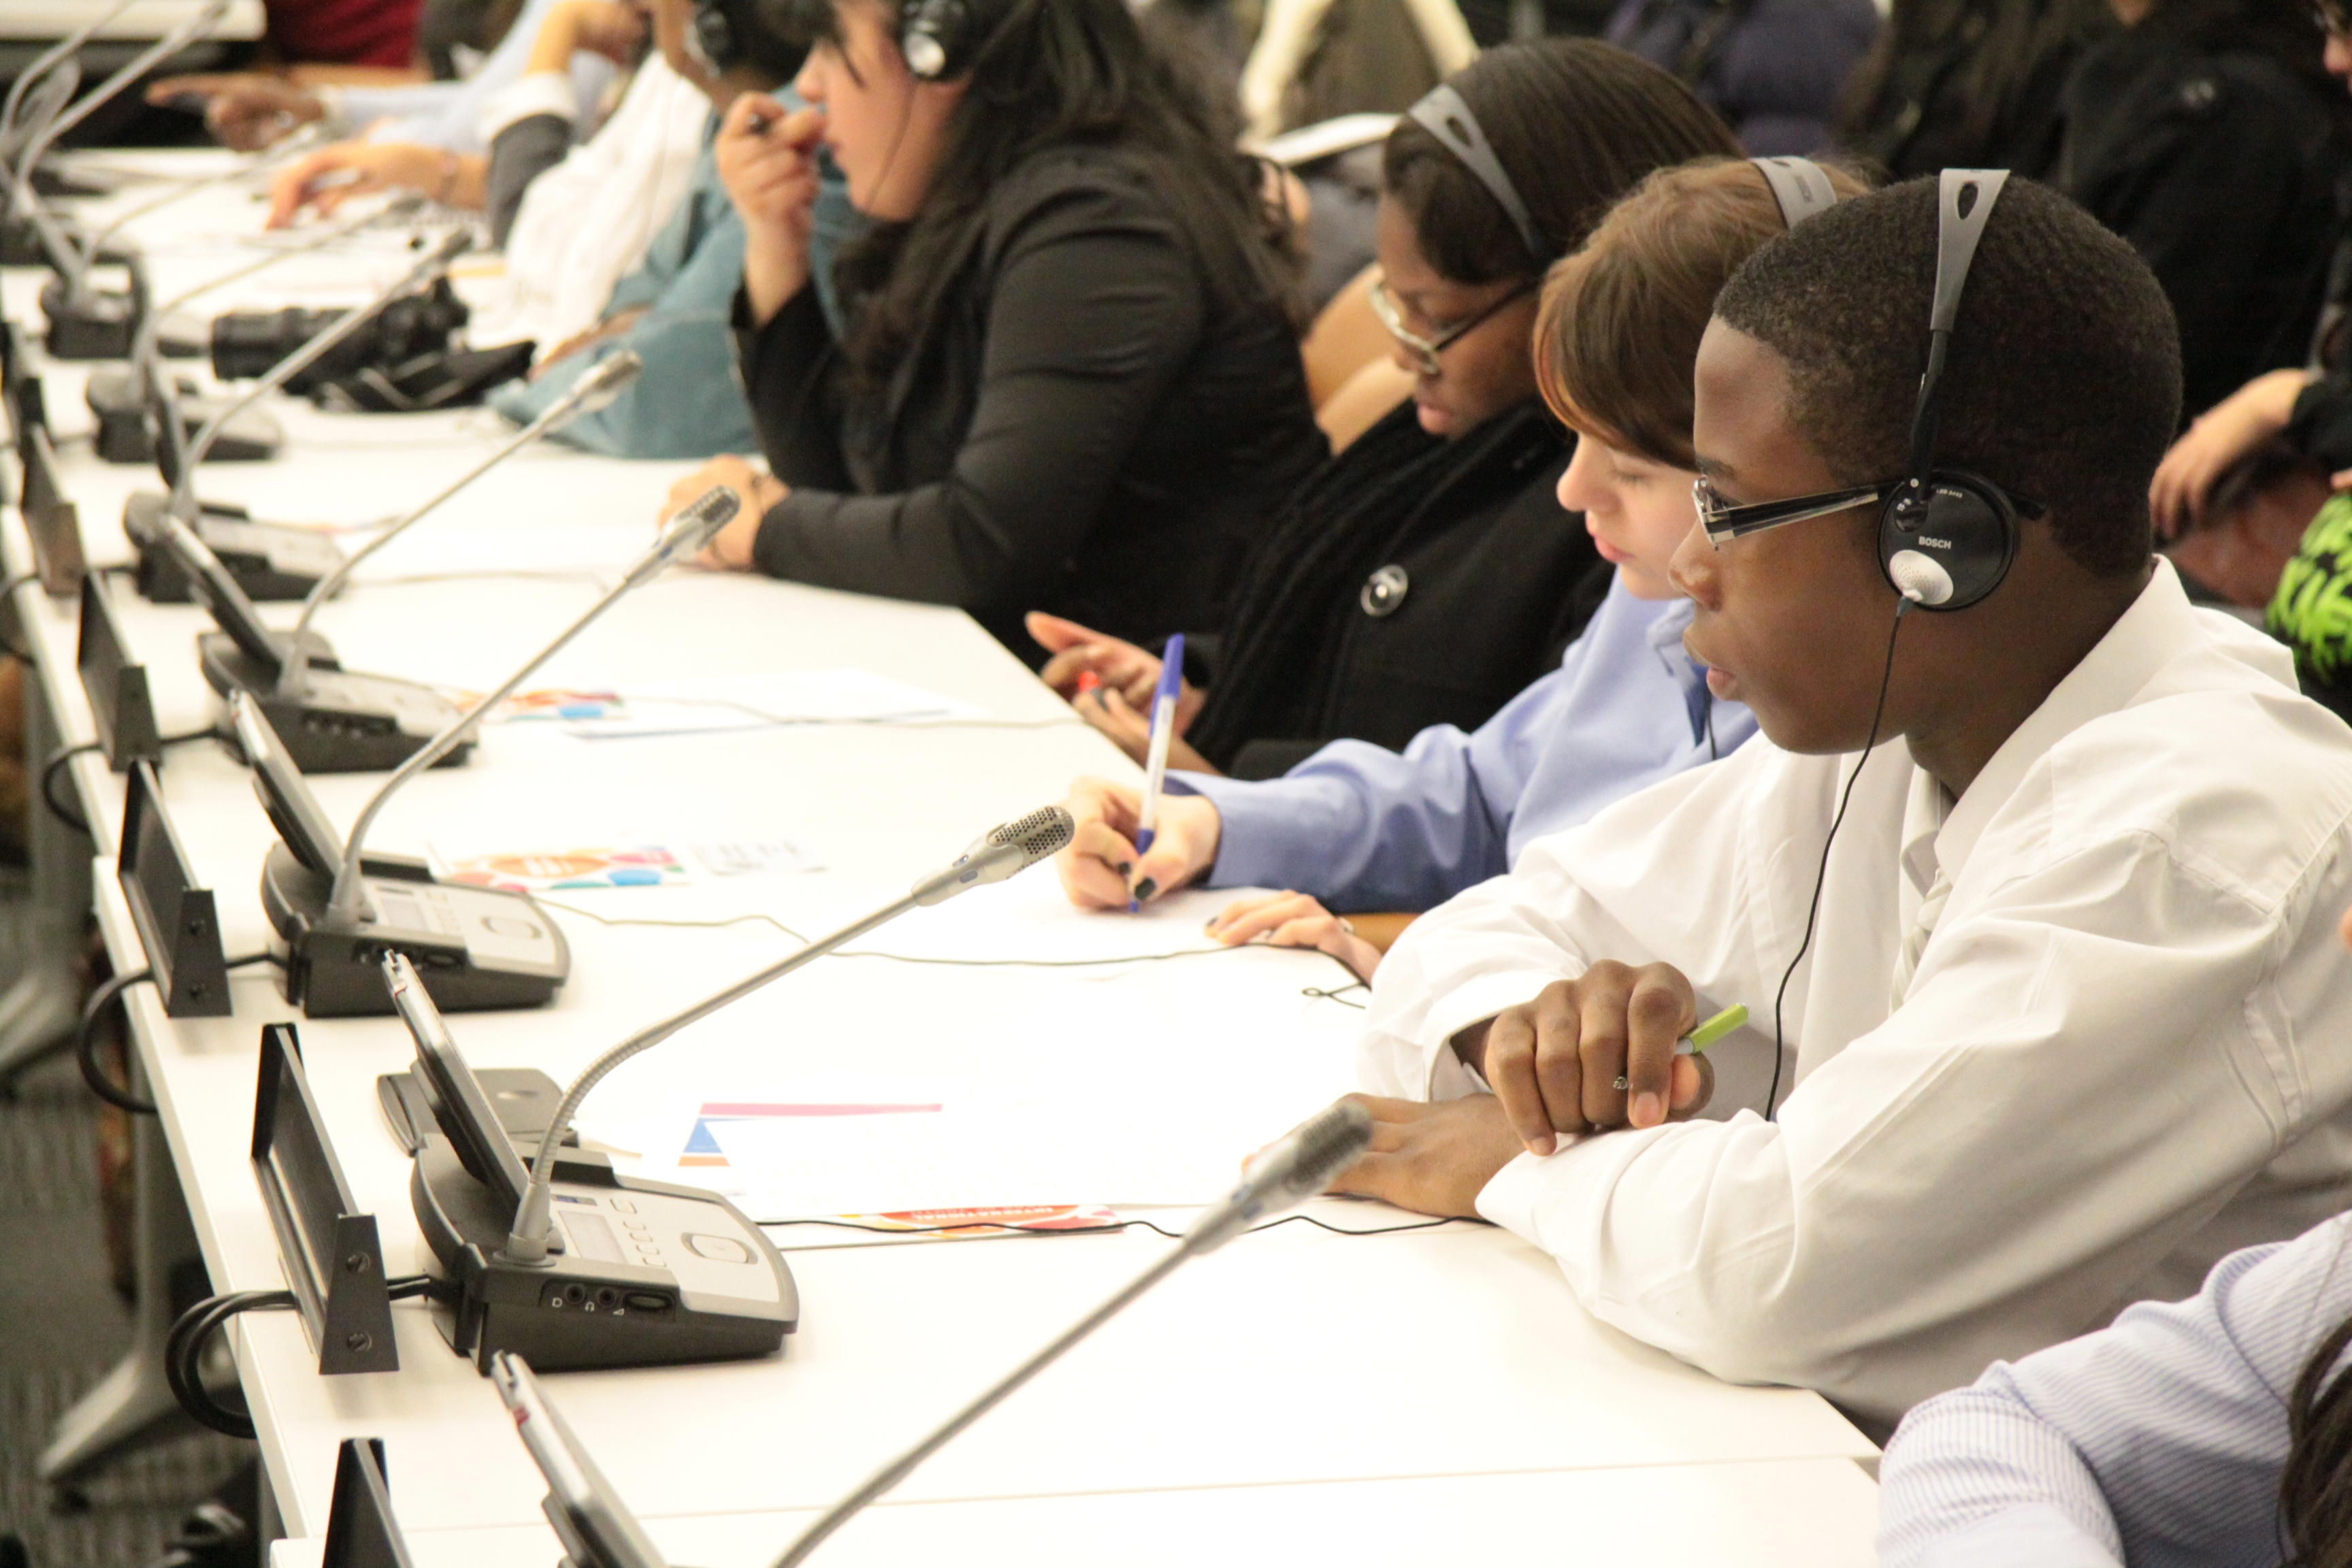 UN Security Council and Youth 2